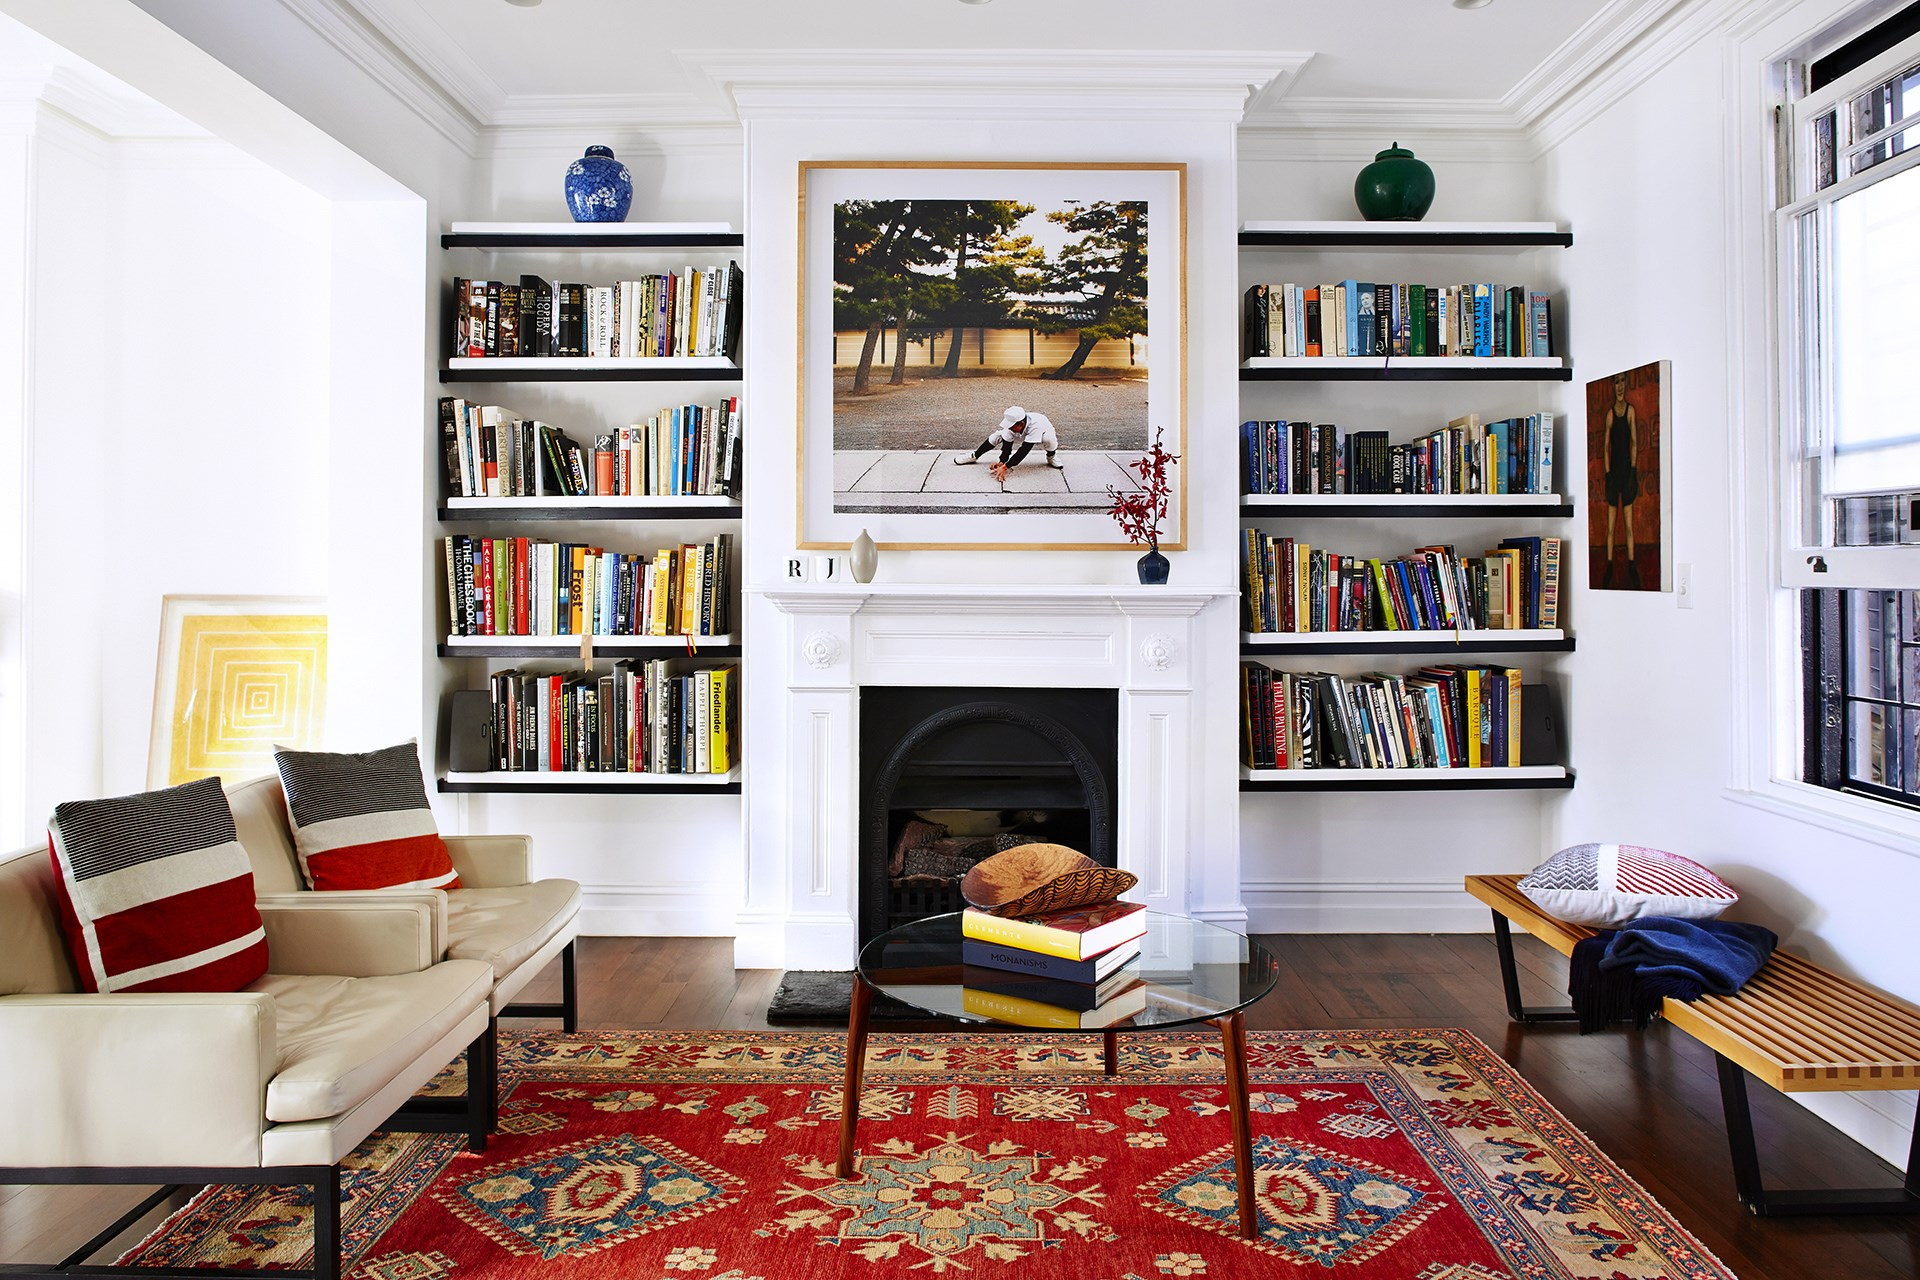 This 1850s Sydney terrace has a new lease on life after a complete exterior – and interior – renovation. Considered placement of shelving and furniture creates a sense of symmetry that suits this classic terrace. Photo: John Paul Urizar / * Australian House & Garden*